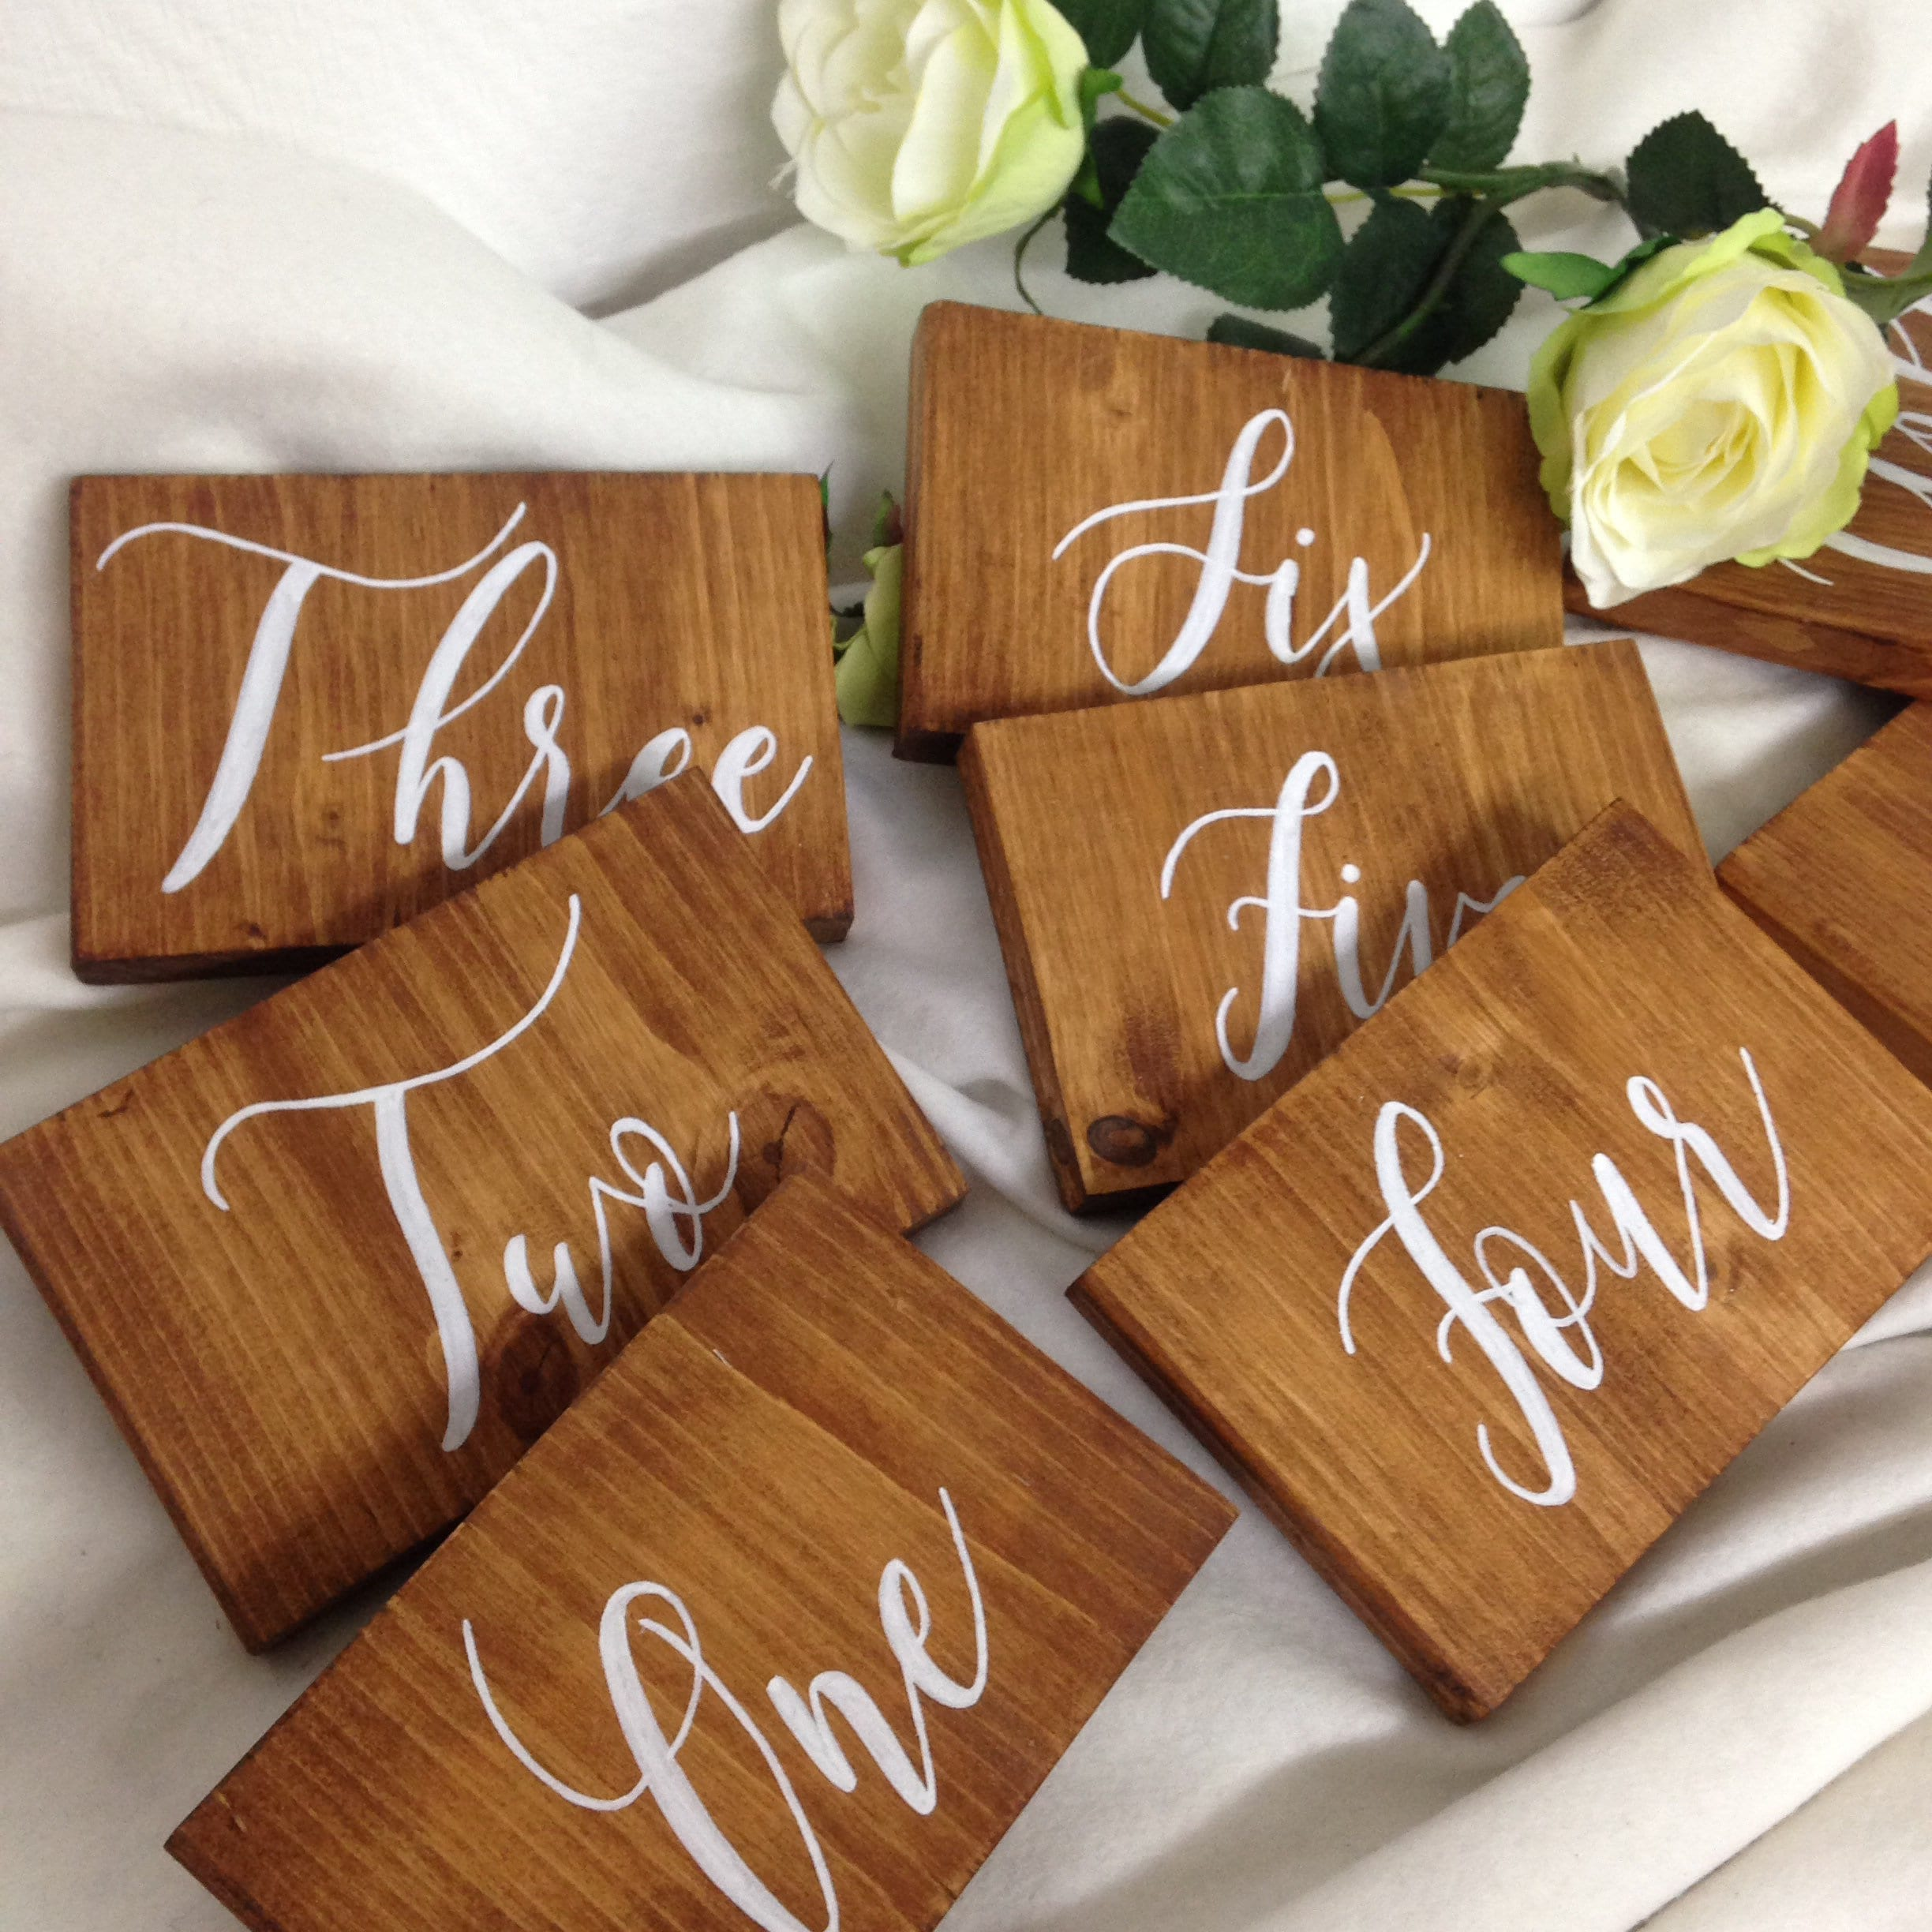 Your Table Numbers On Wooden Plate Pine Wood Shade Of Your Choice Signature Calligraphy Center Table Plate Event